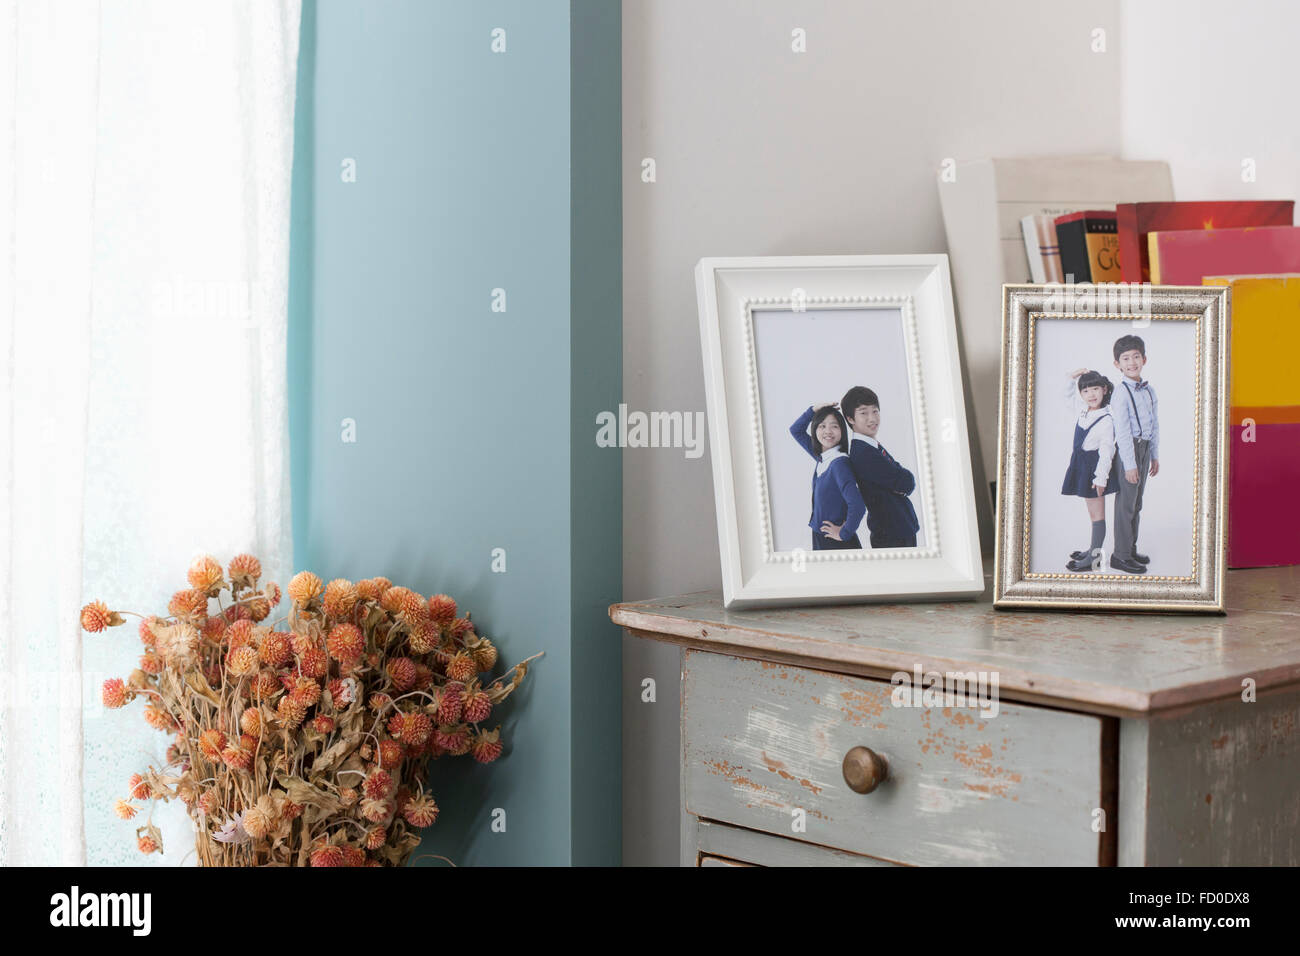 Children's photos in frames placed on a drawer - Stock Image